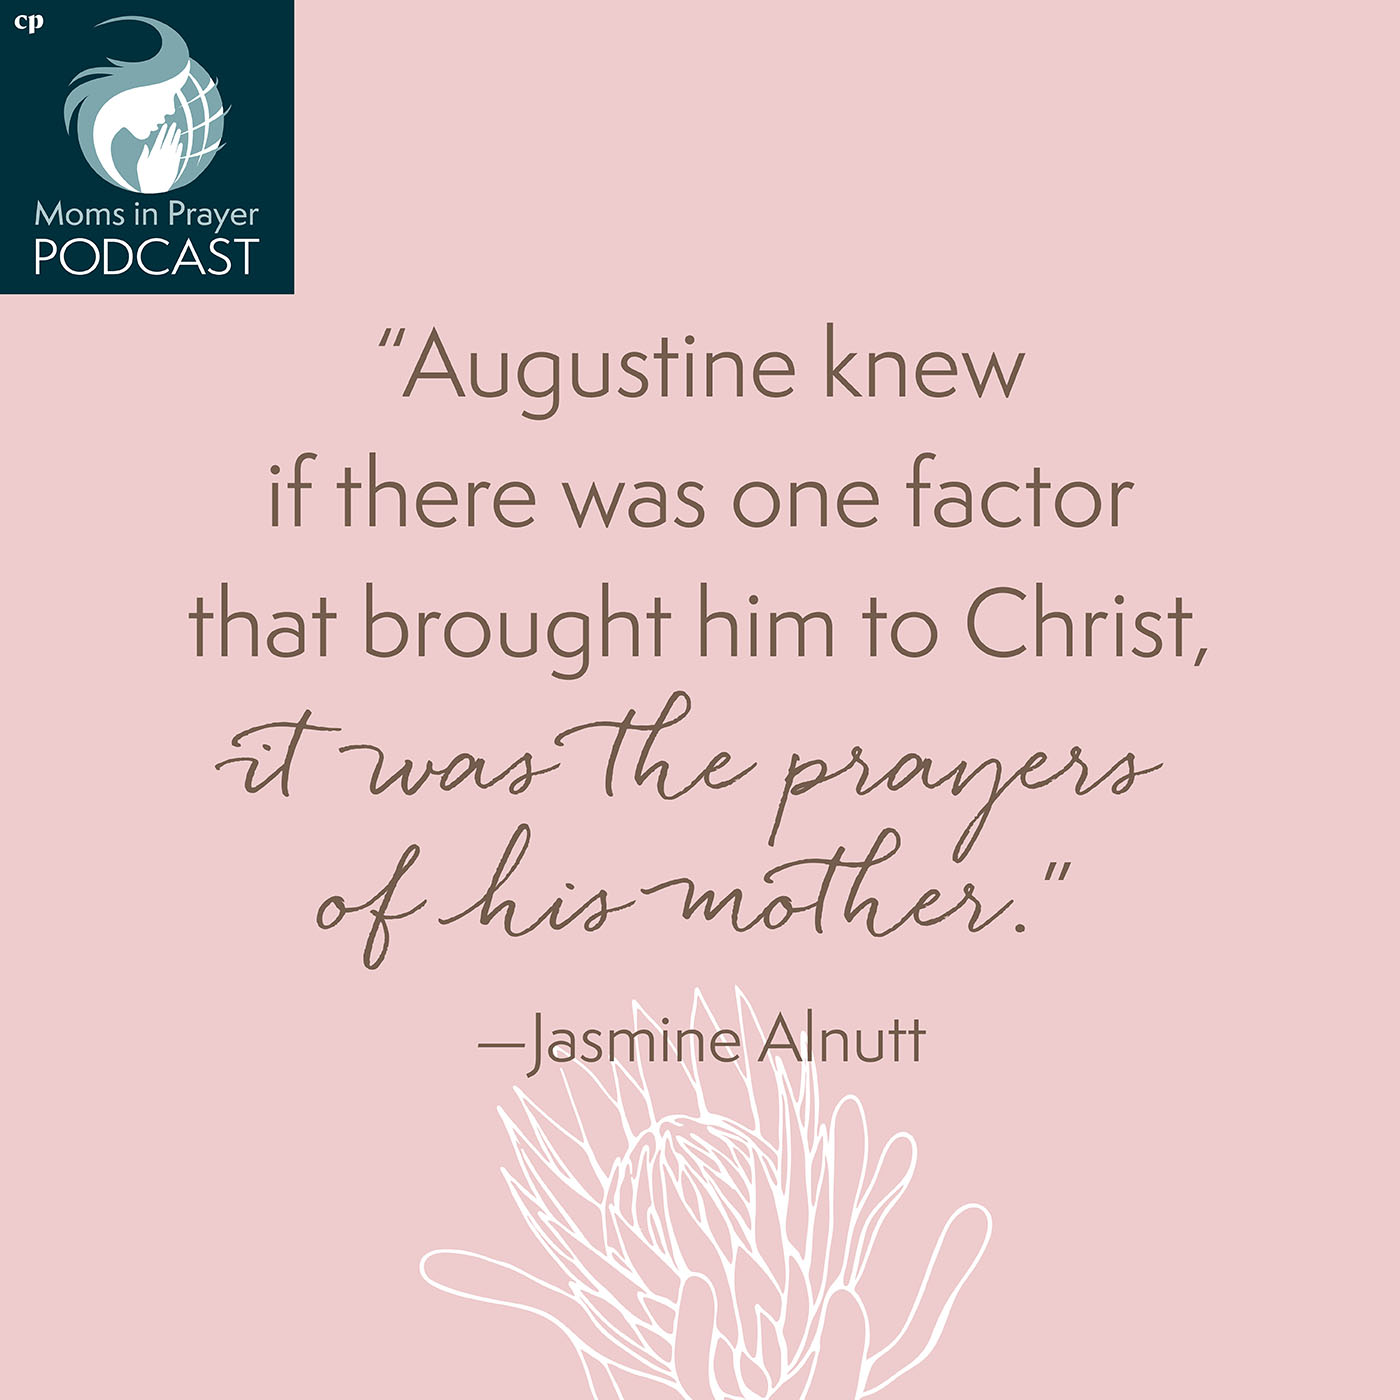 Prayers of his mother brought Augustine to Christ